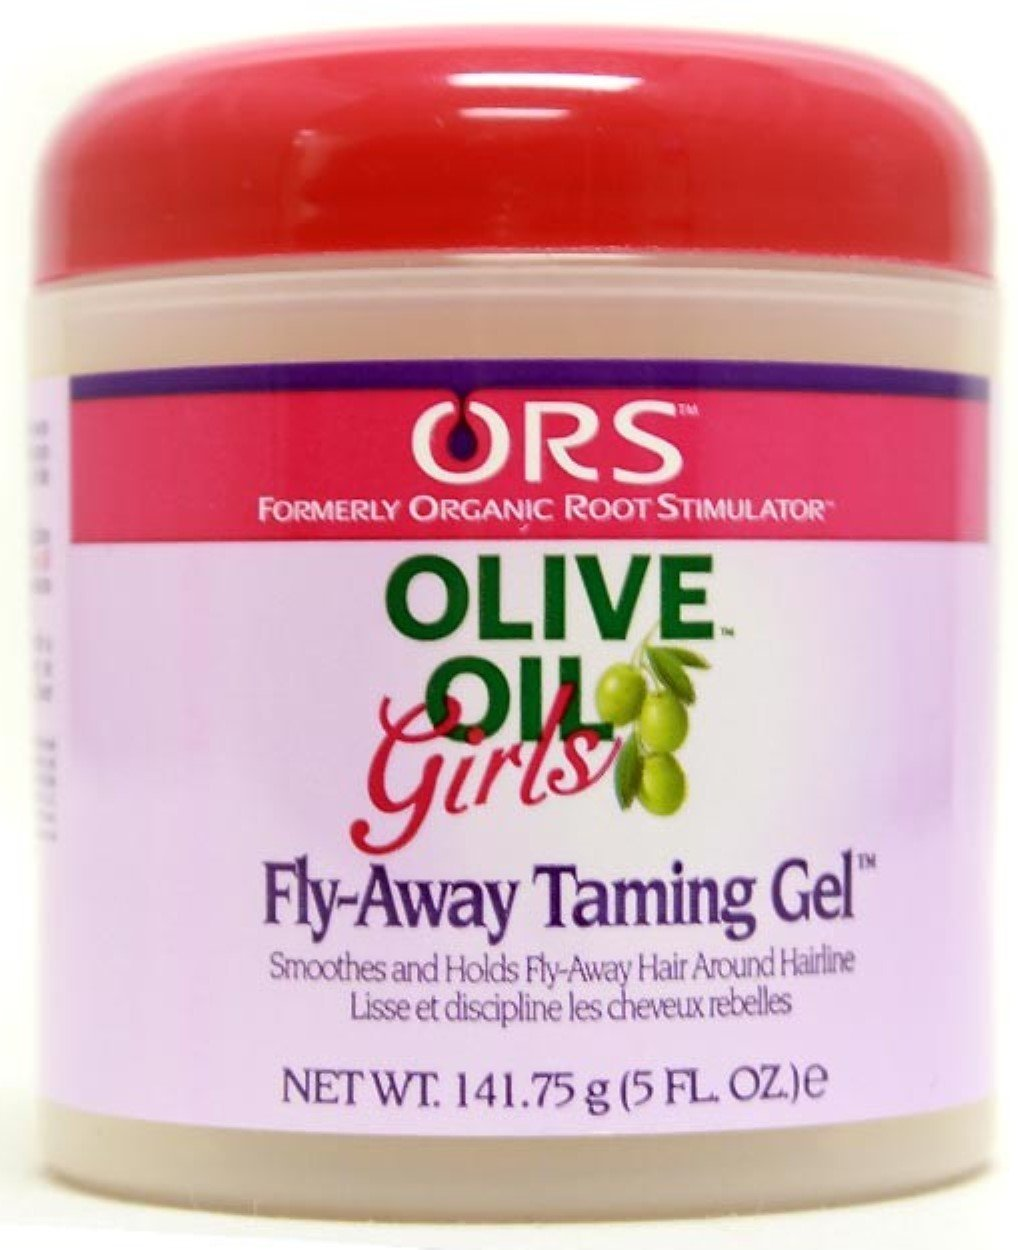 Organic Root Stimulator Girls Hair Gel Fly-Away Taming, 5 oz (Pack of 12)